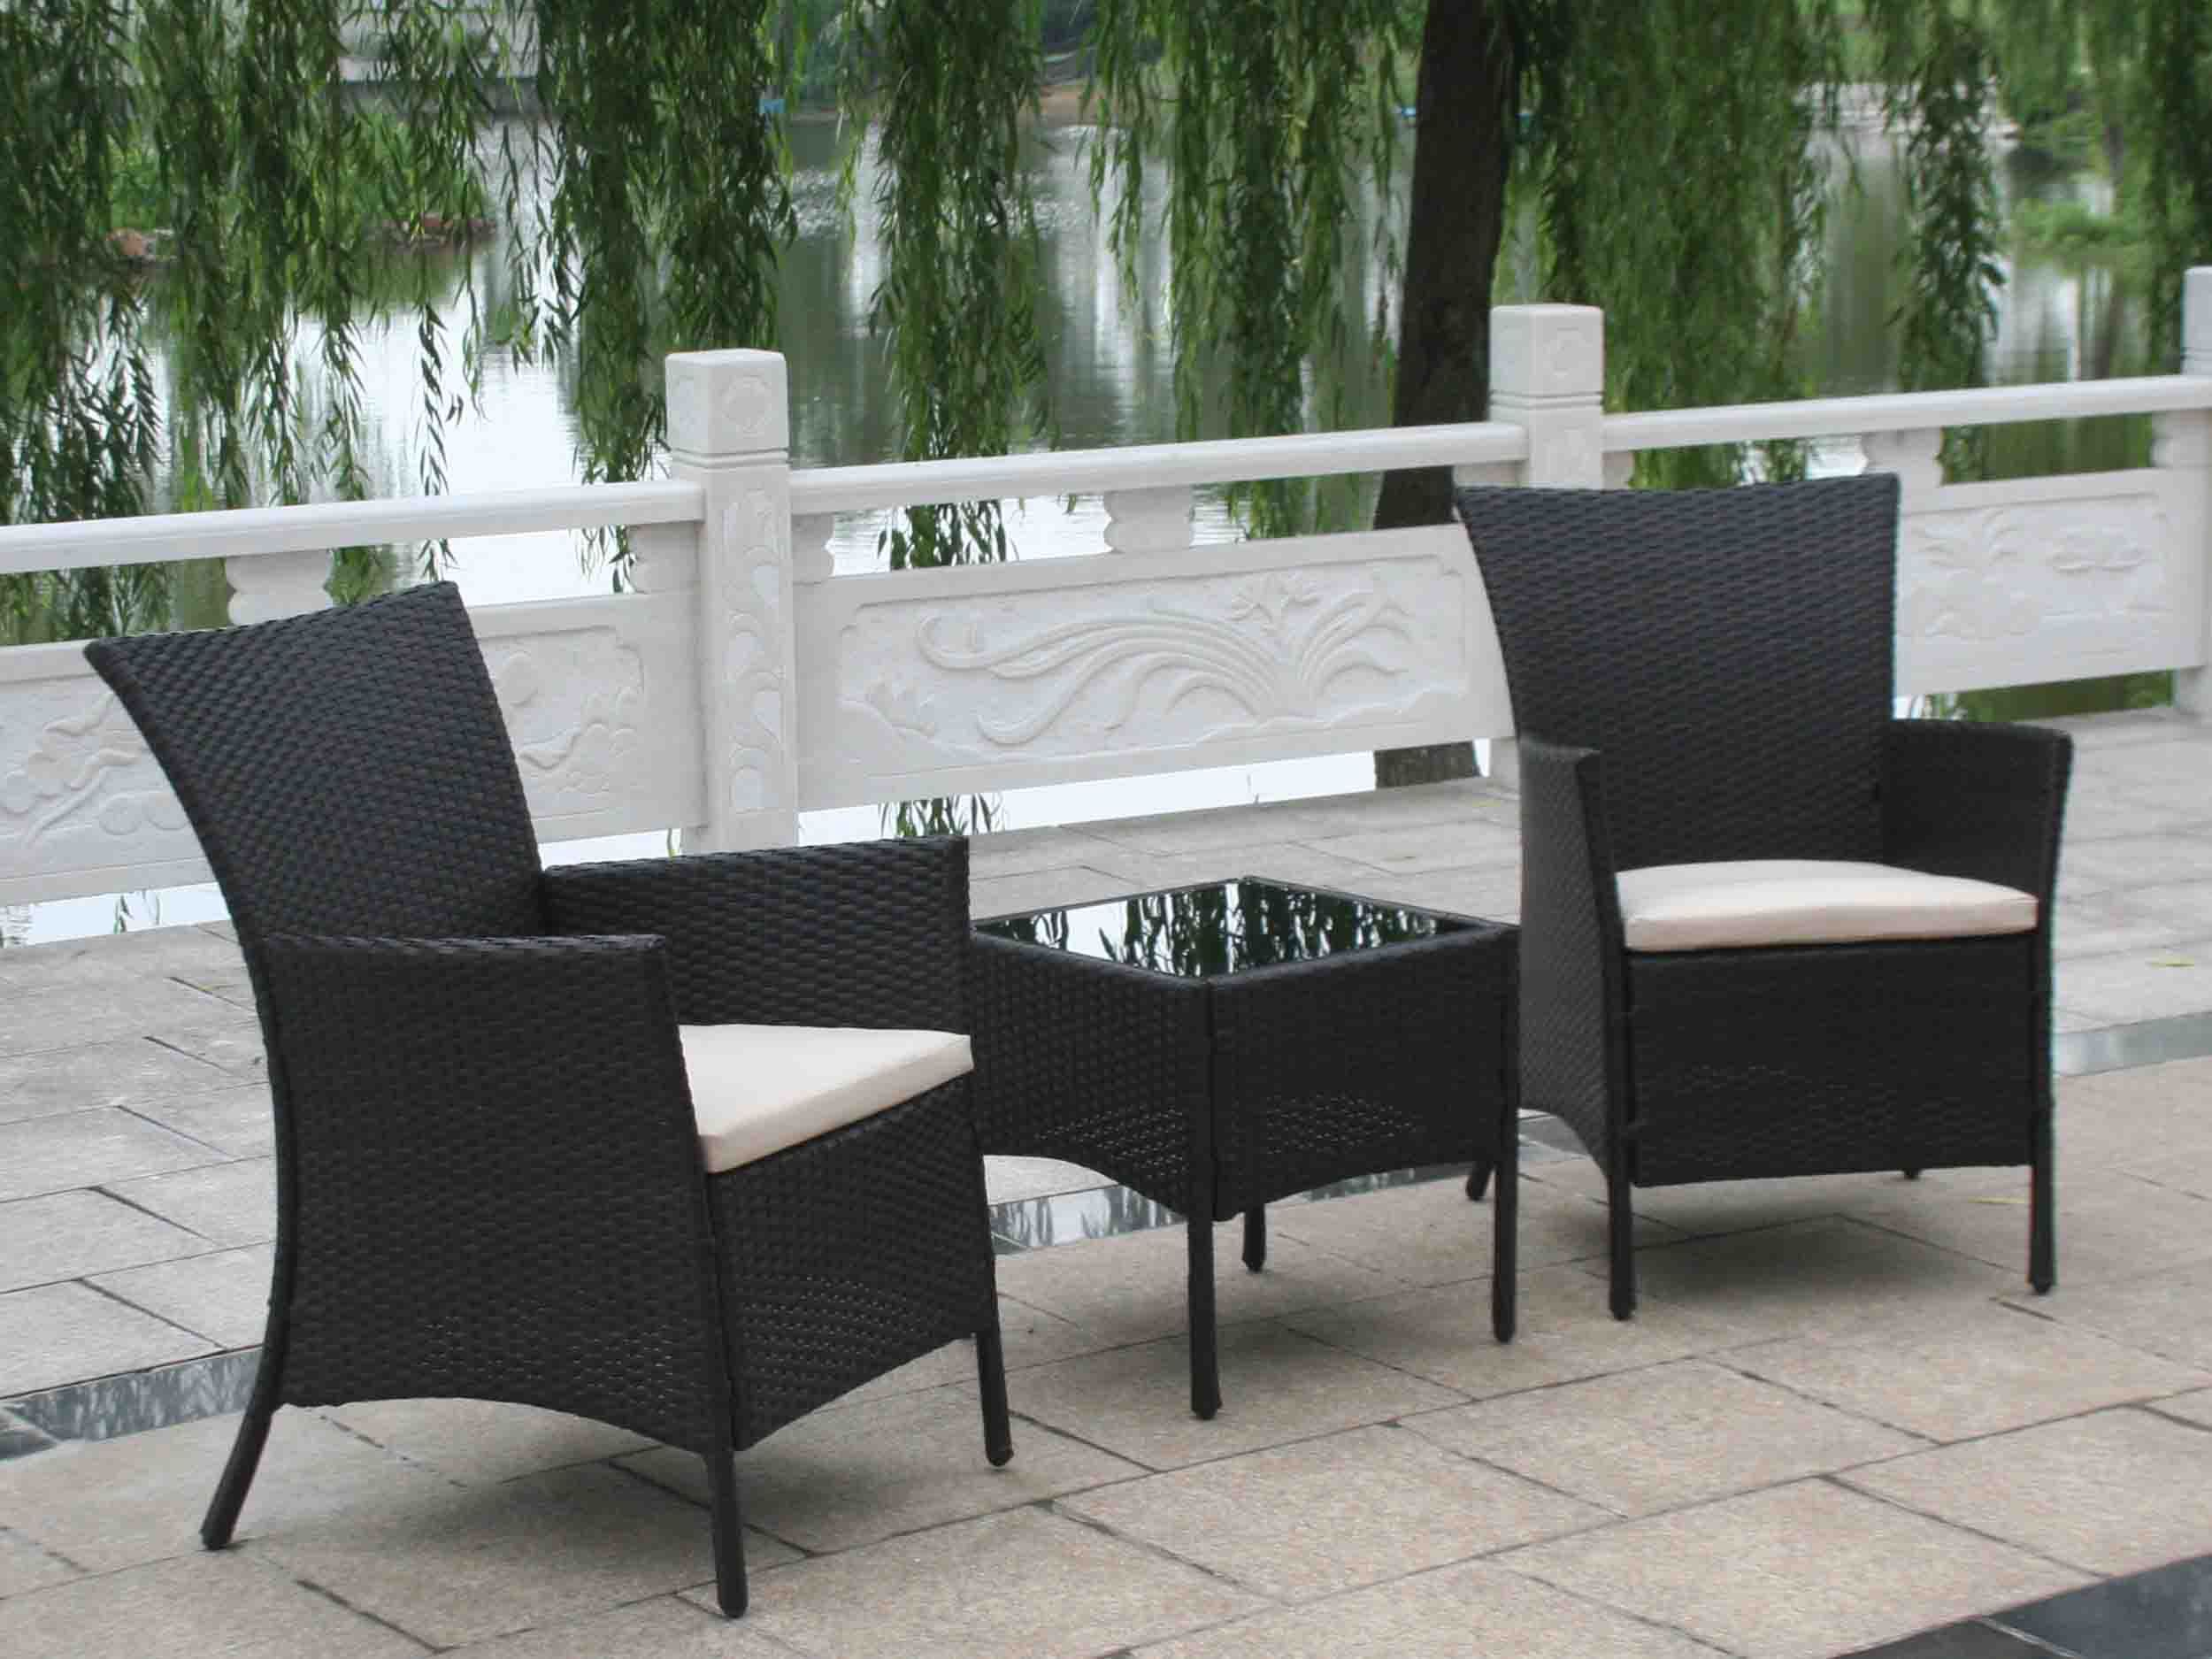 for black types of tomichbros furniture to patio com how outdoor wicker care resin